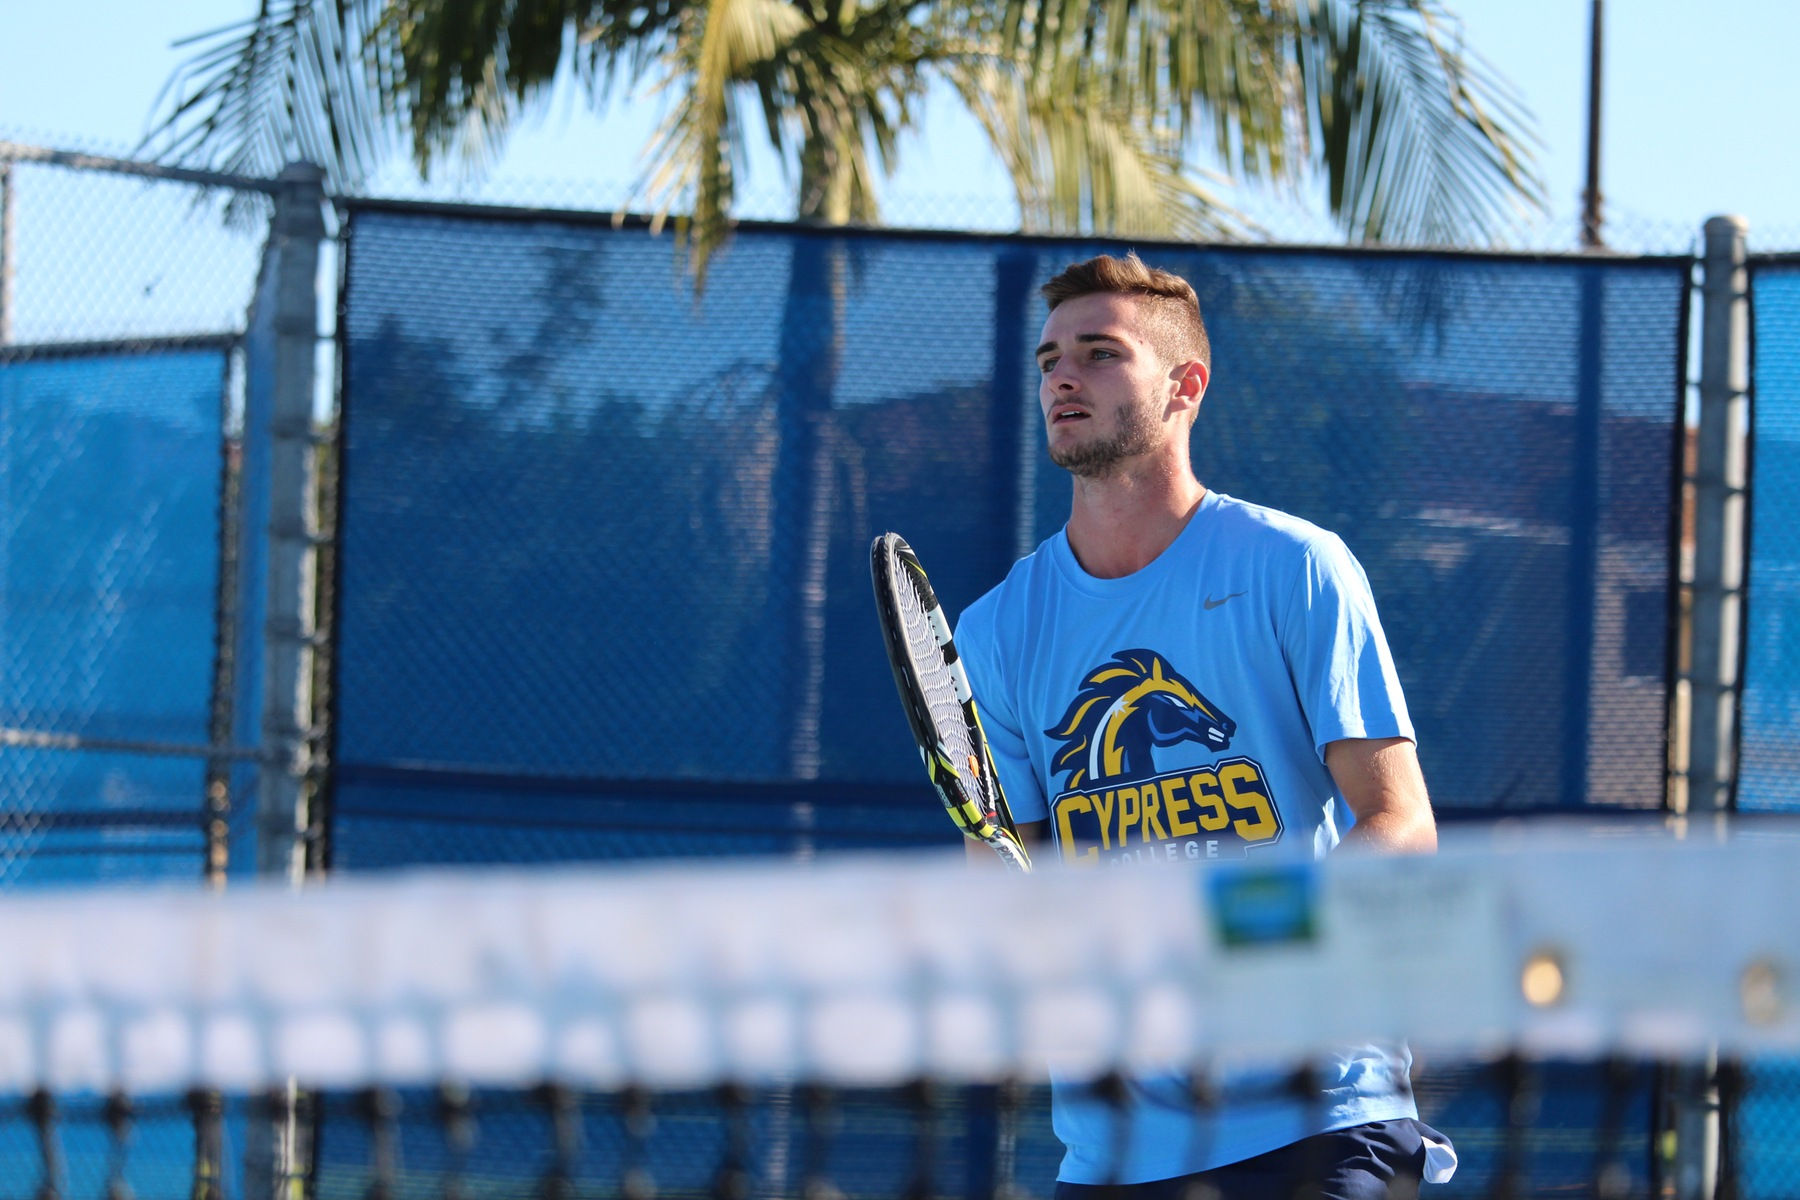 Men's Tennis Opens Season With First Victory in 5 Years